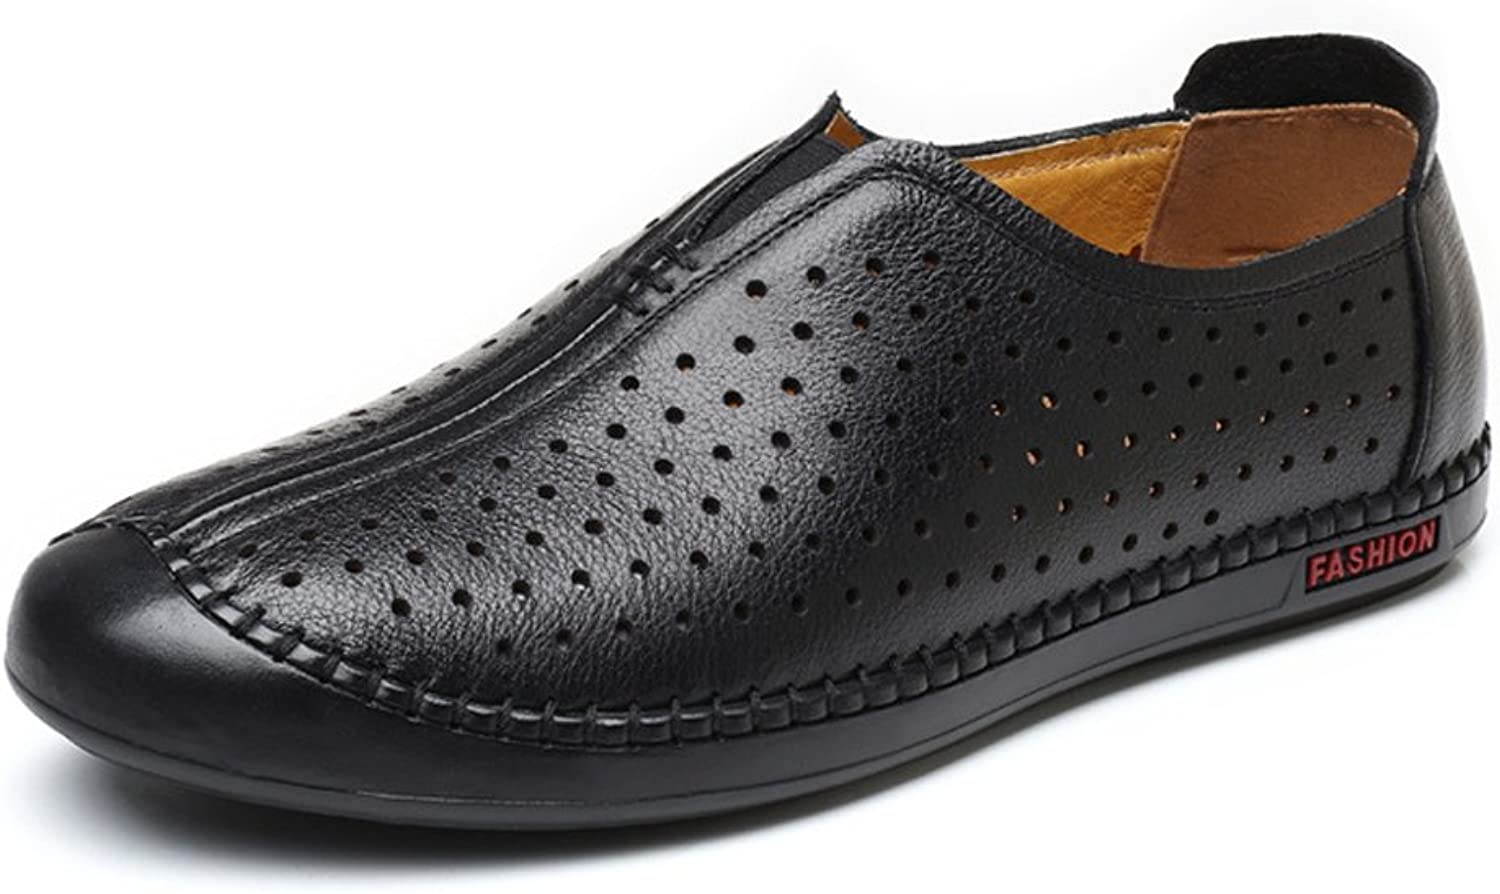 SRY-shoes Men's Classic Genuine Leather shoes Breathable Perforation Round Toe Slip-on Flat Sole Loafer